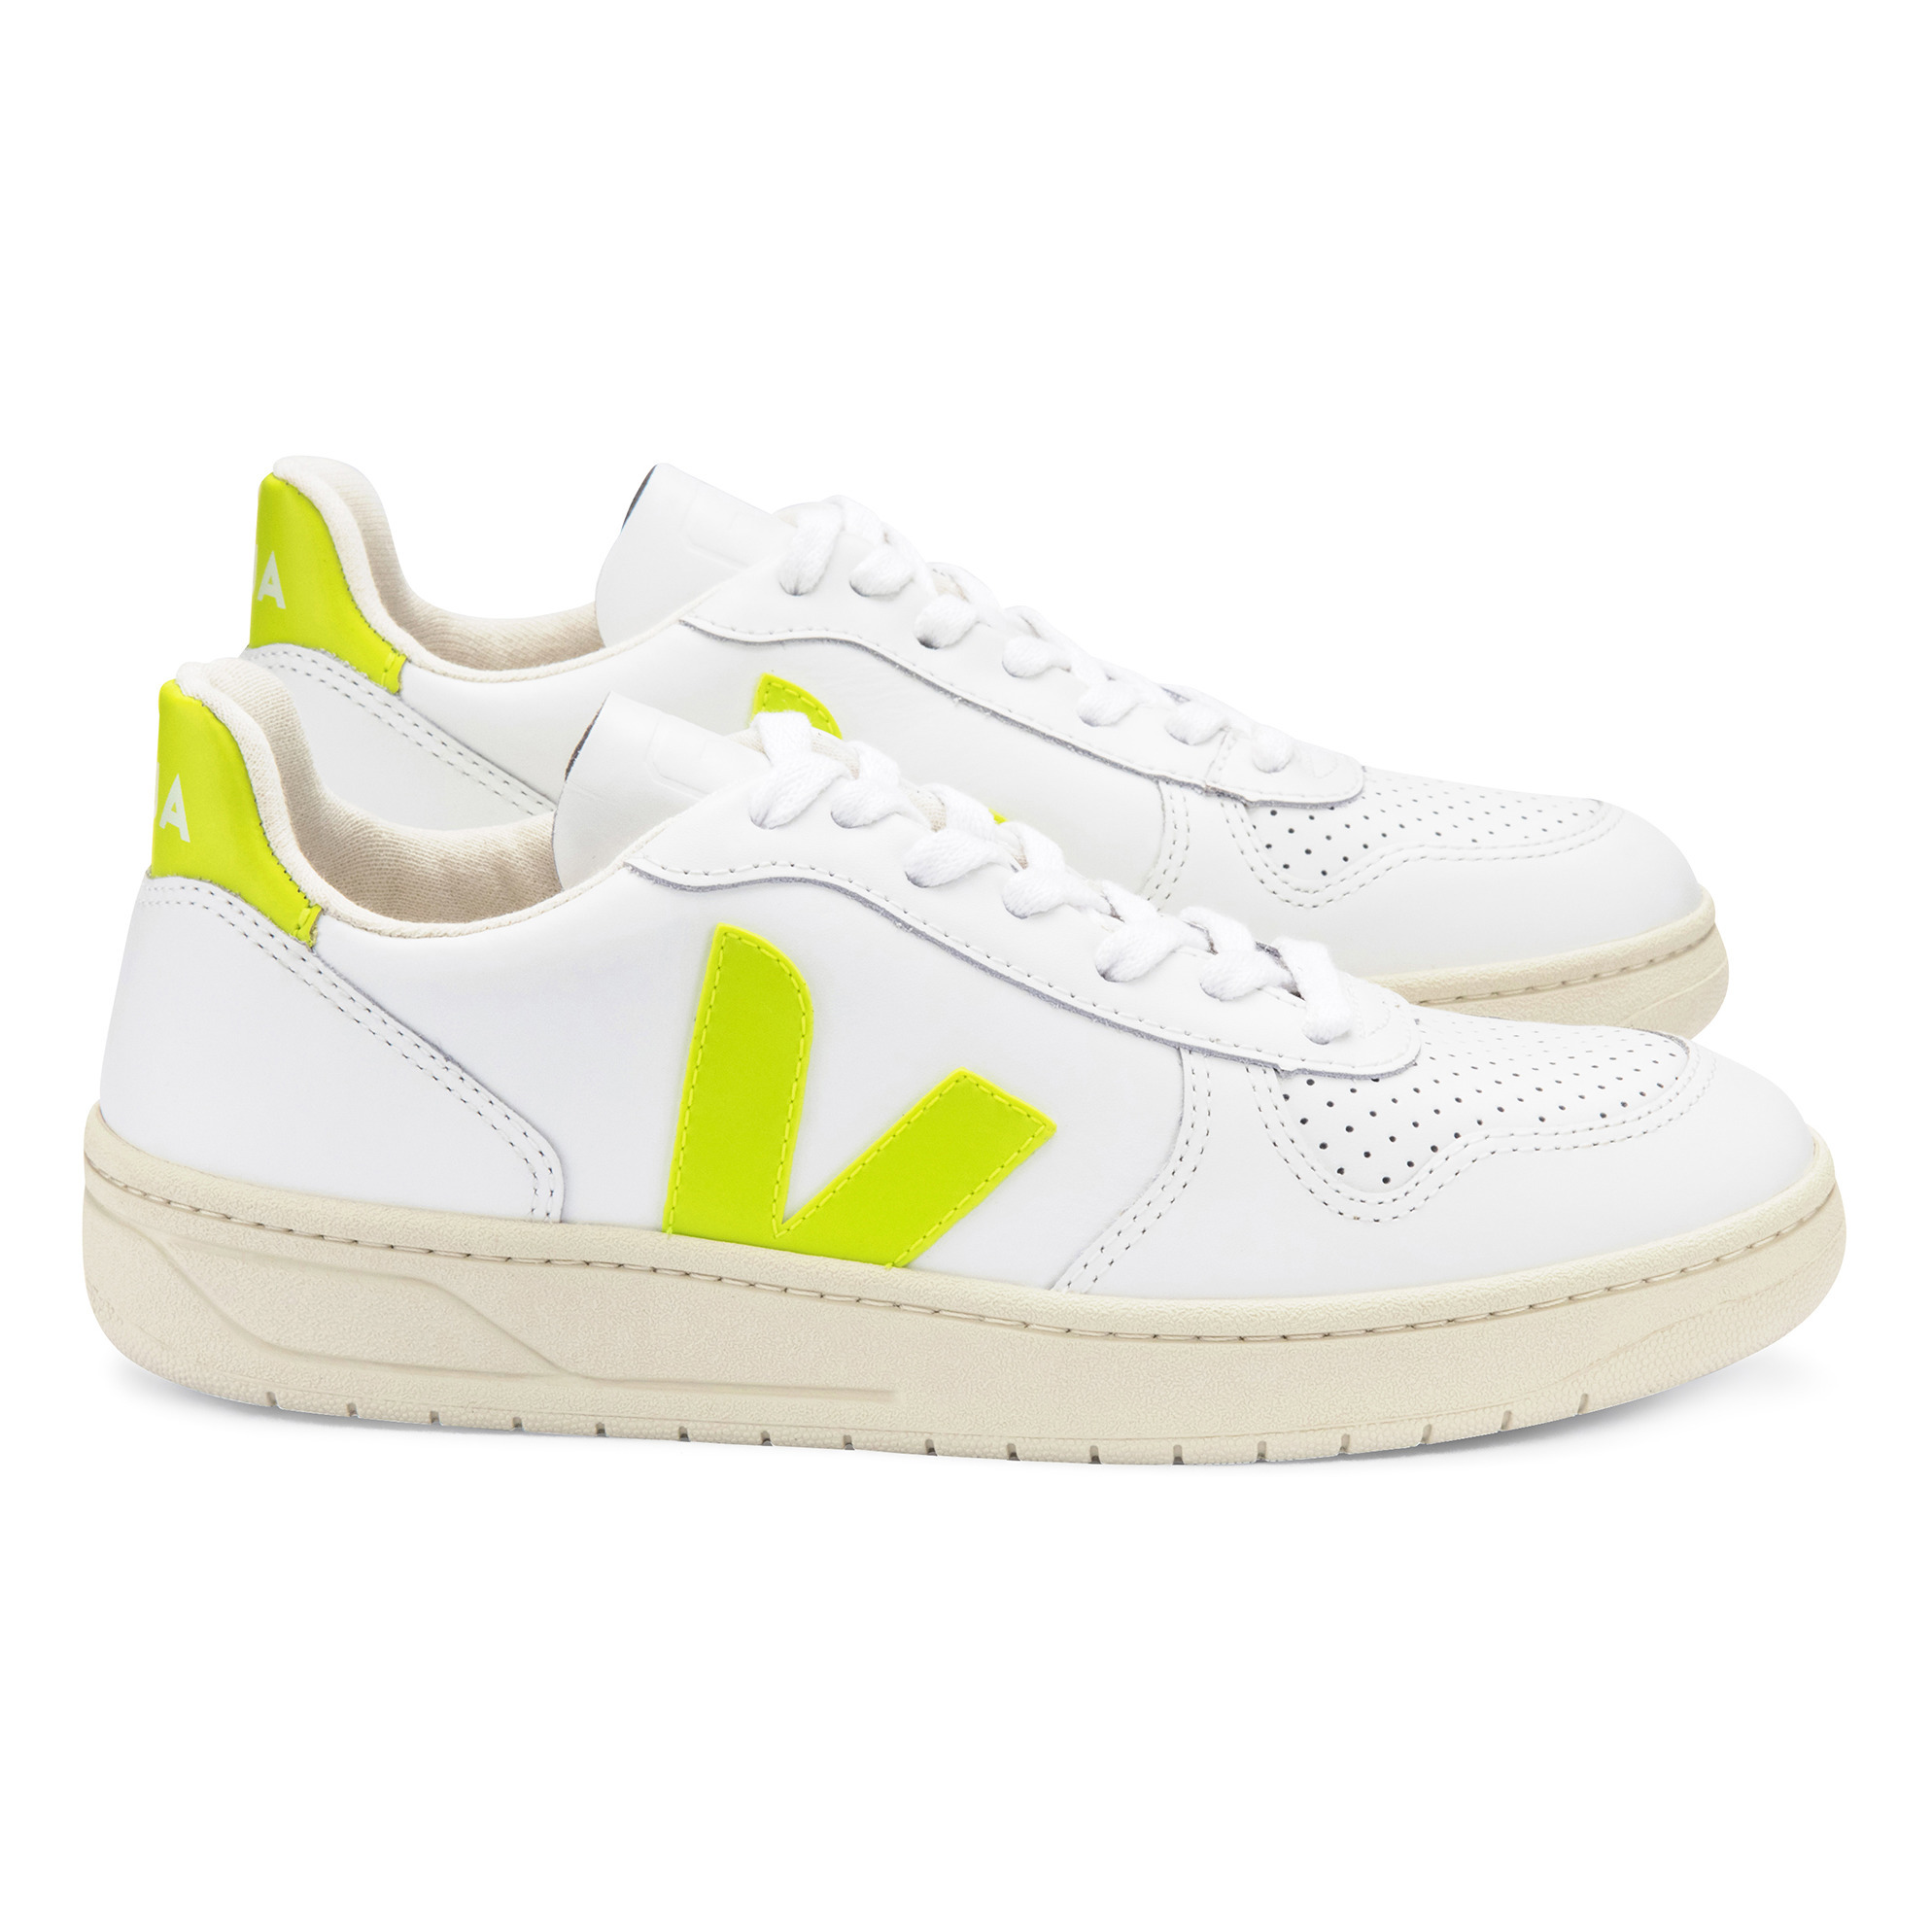 V-10 Leather Sneakers - Women's